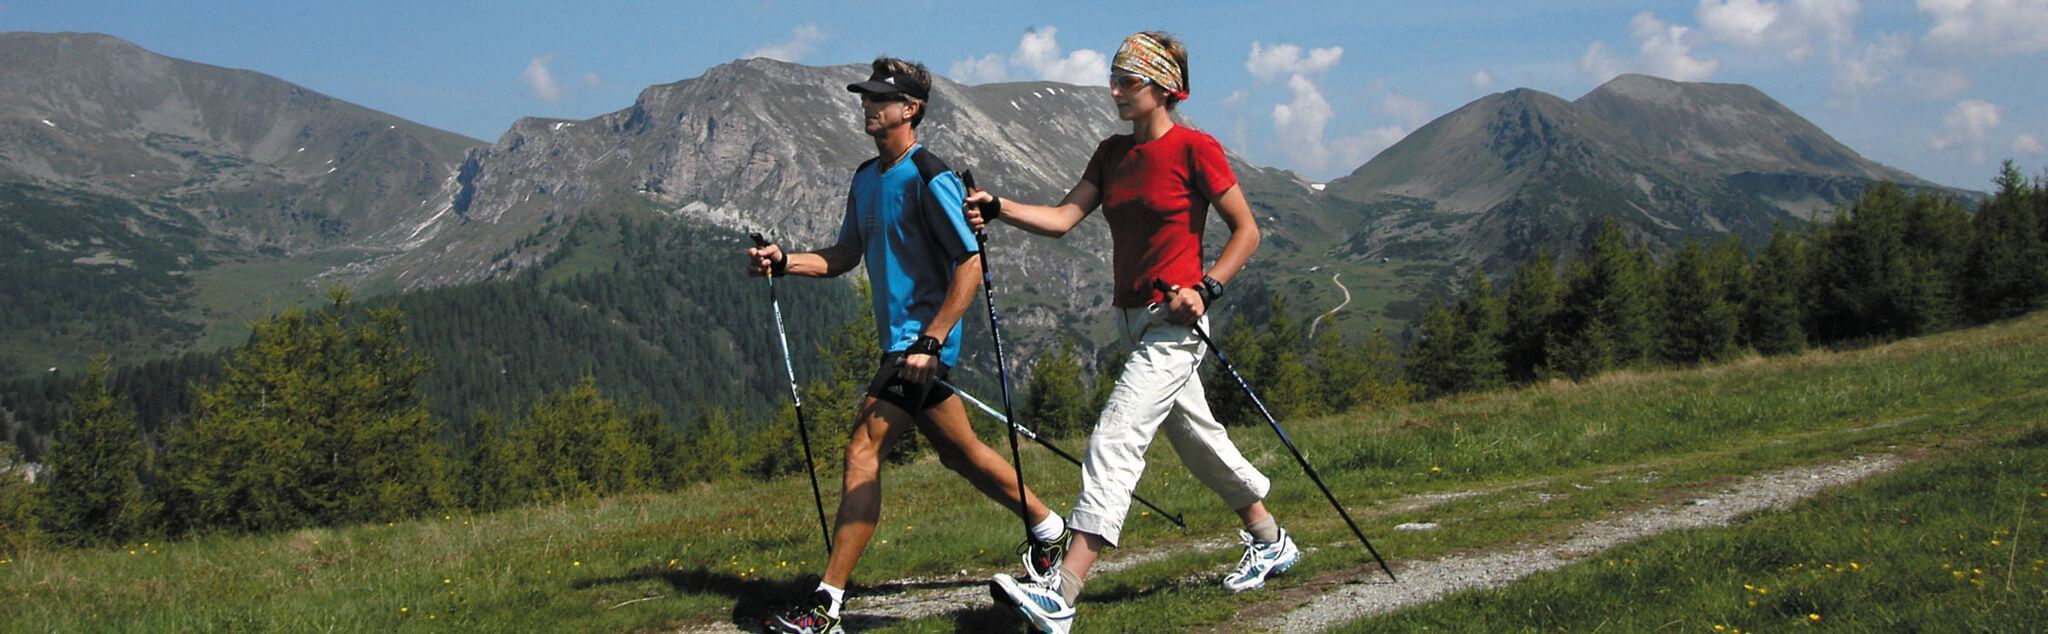 Nordic Walking a Biella